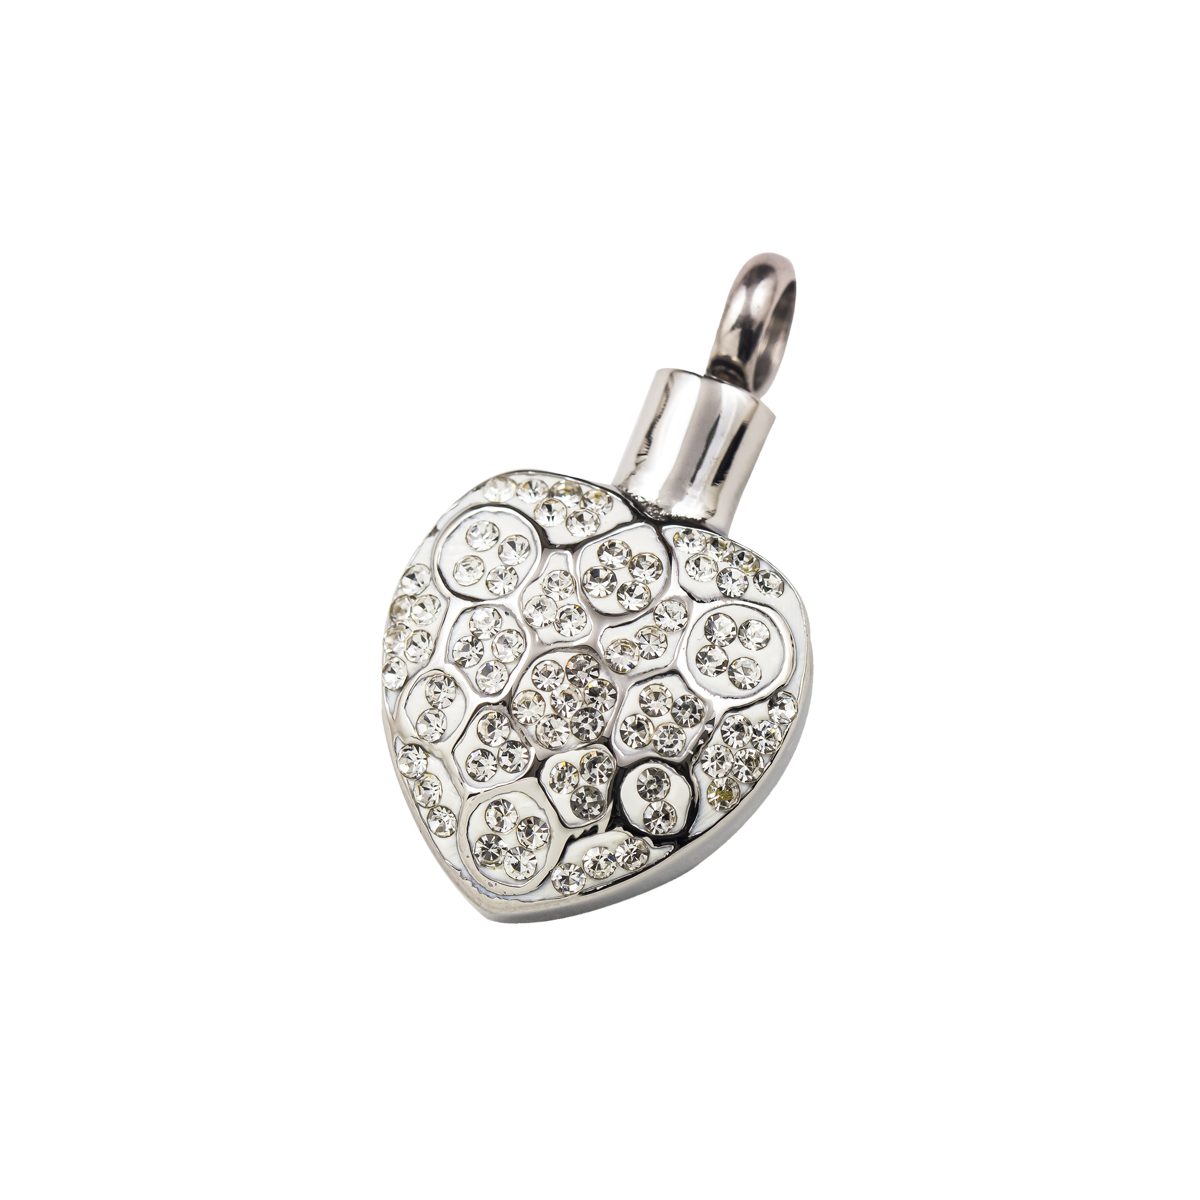 Bedazzled Heart Stainless Steel Penant